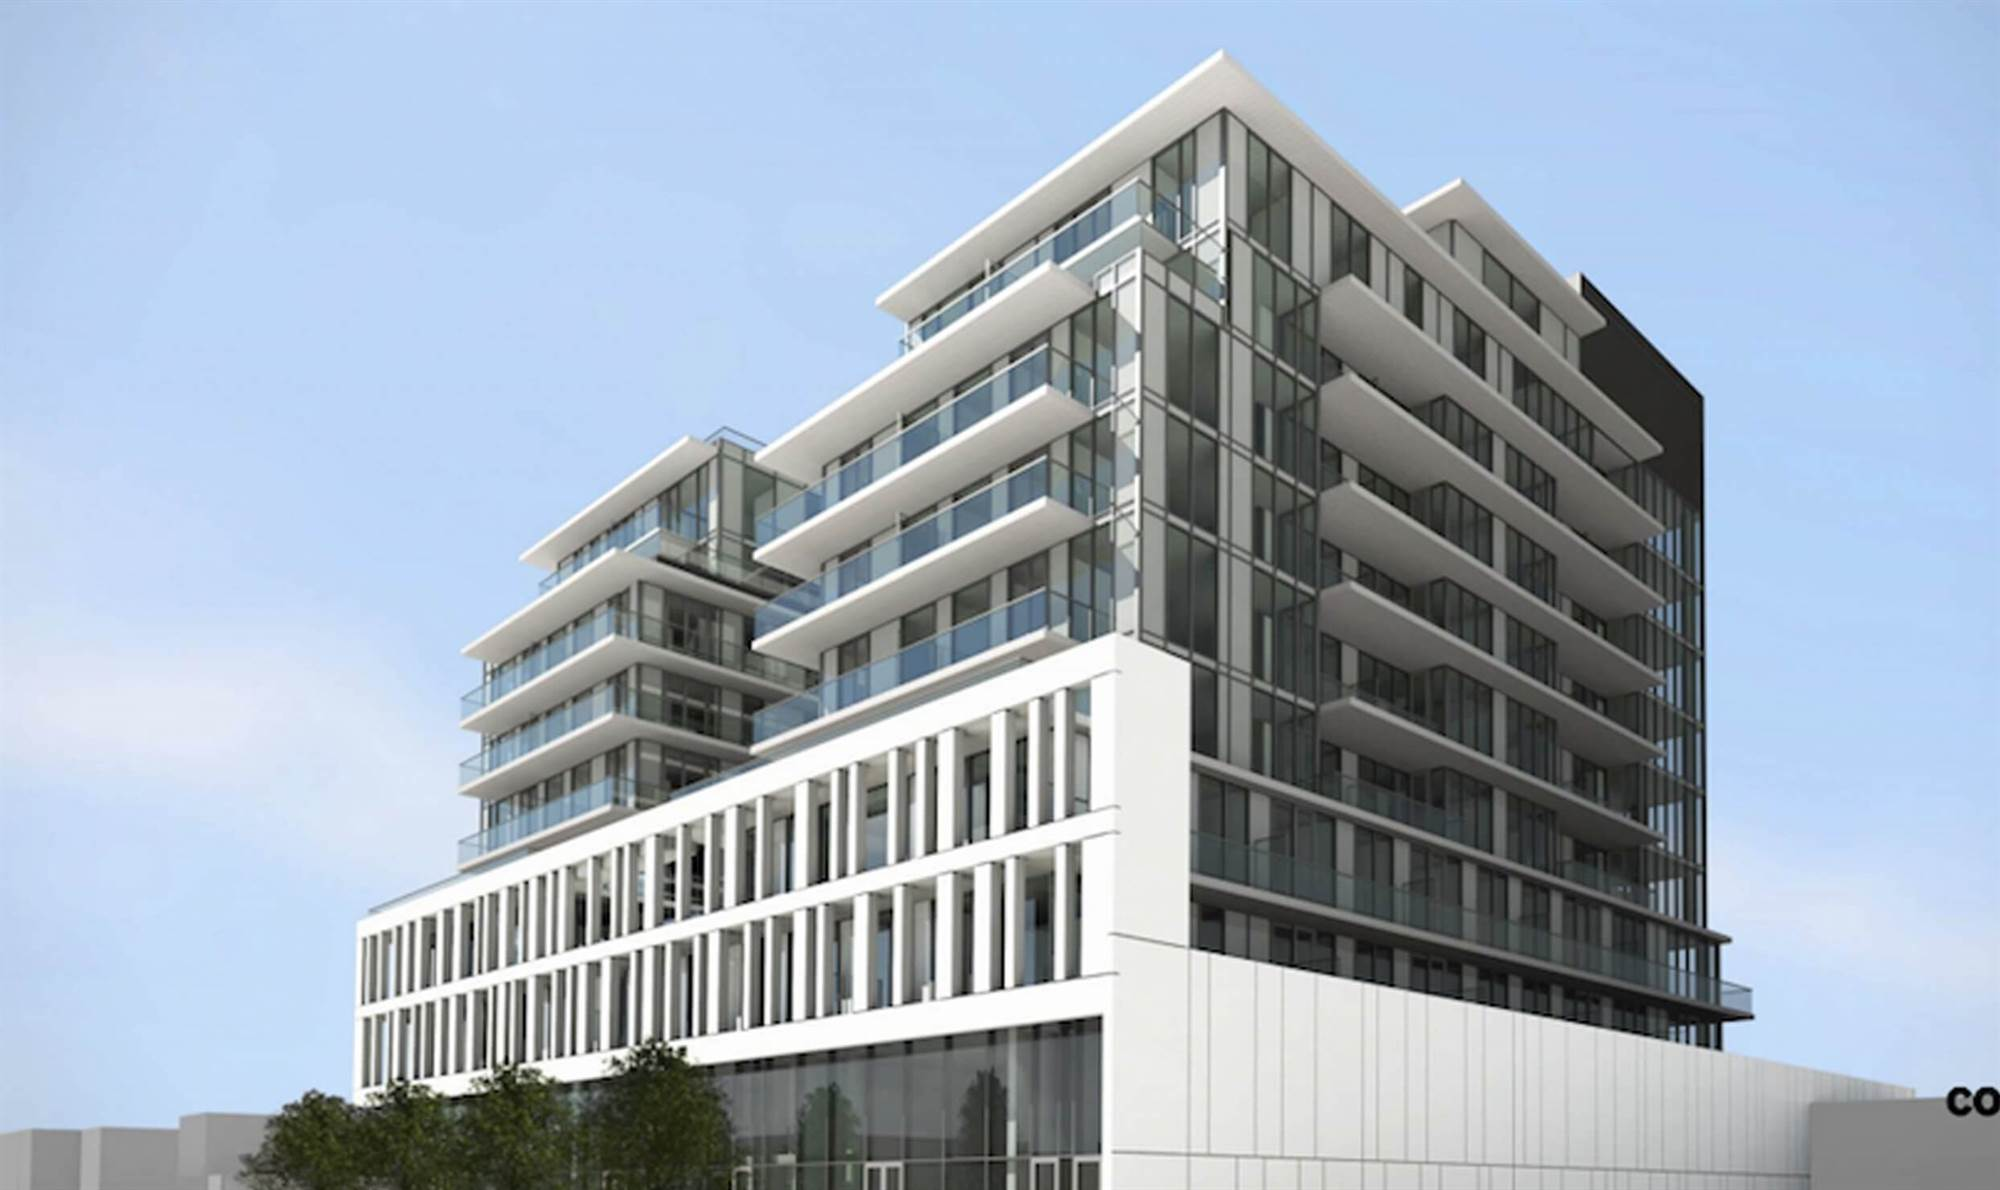 building-exterior-the-oscar-residences-at-bathurst-st-amp-dupont-st-12-v38-full